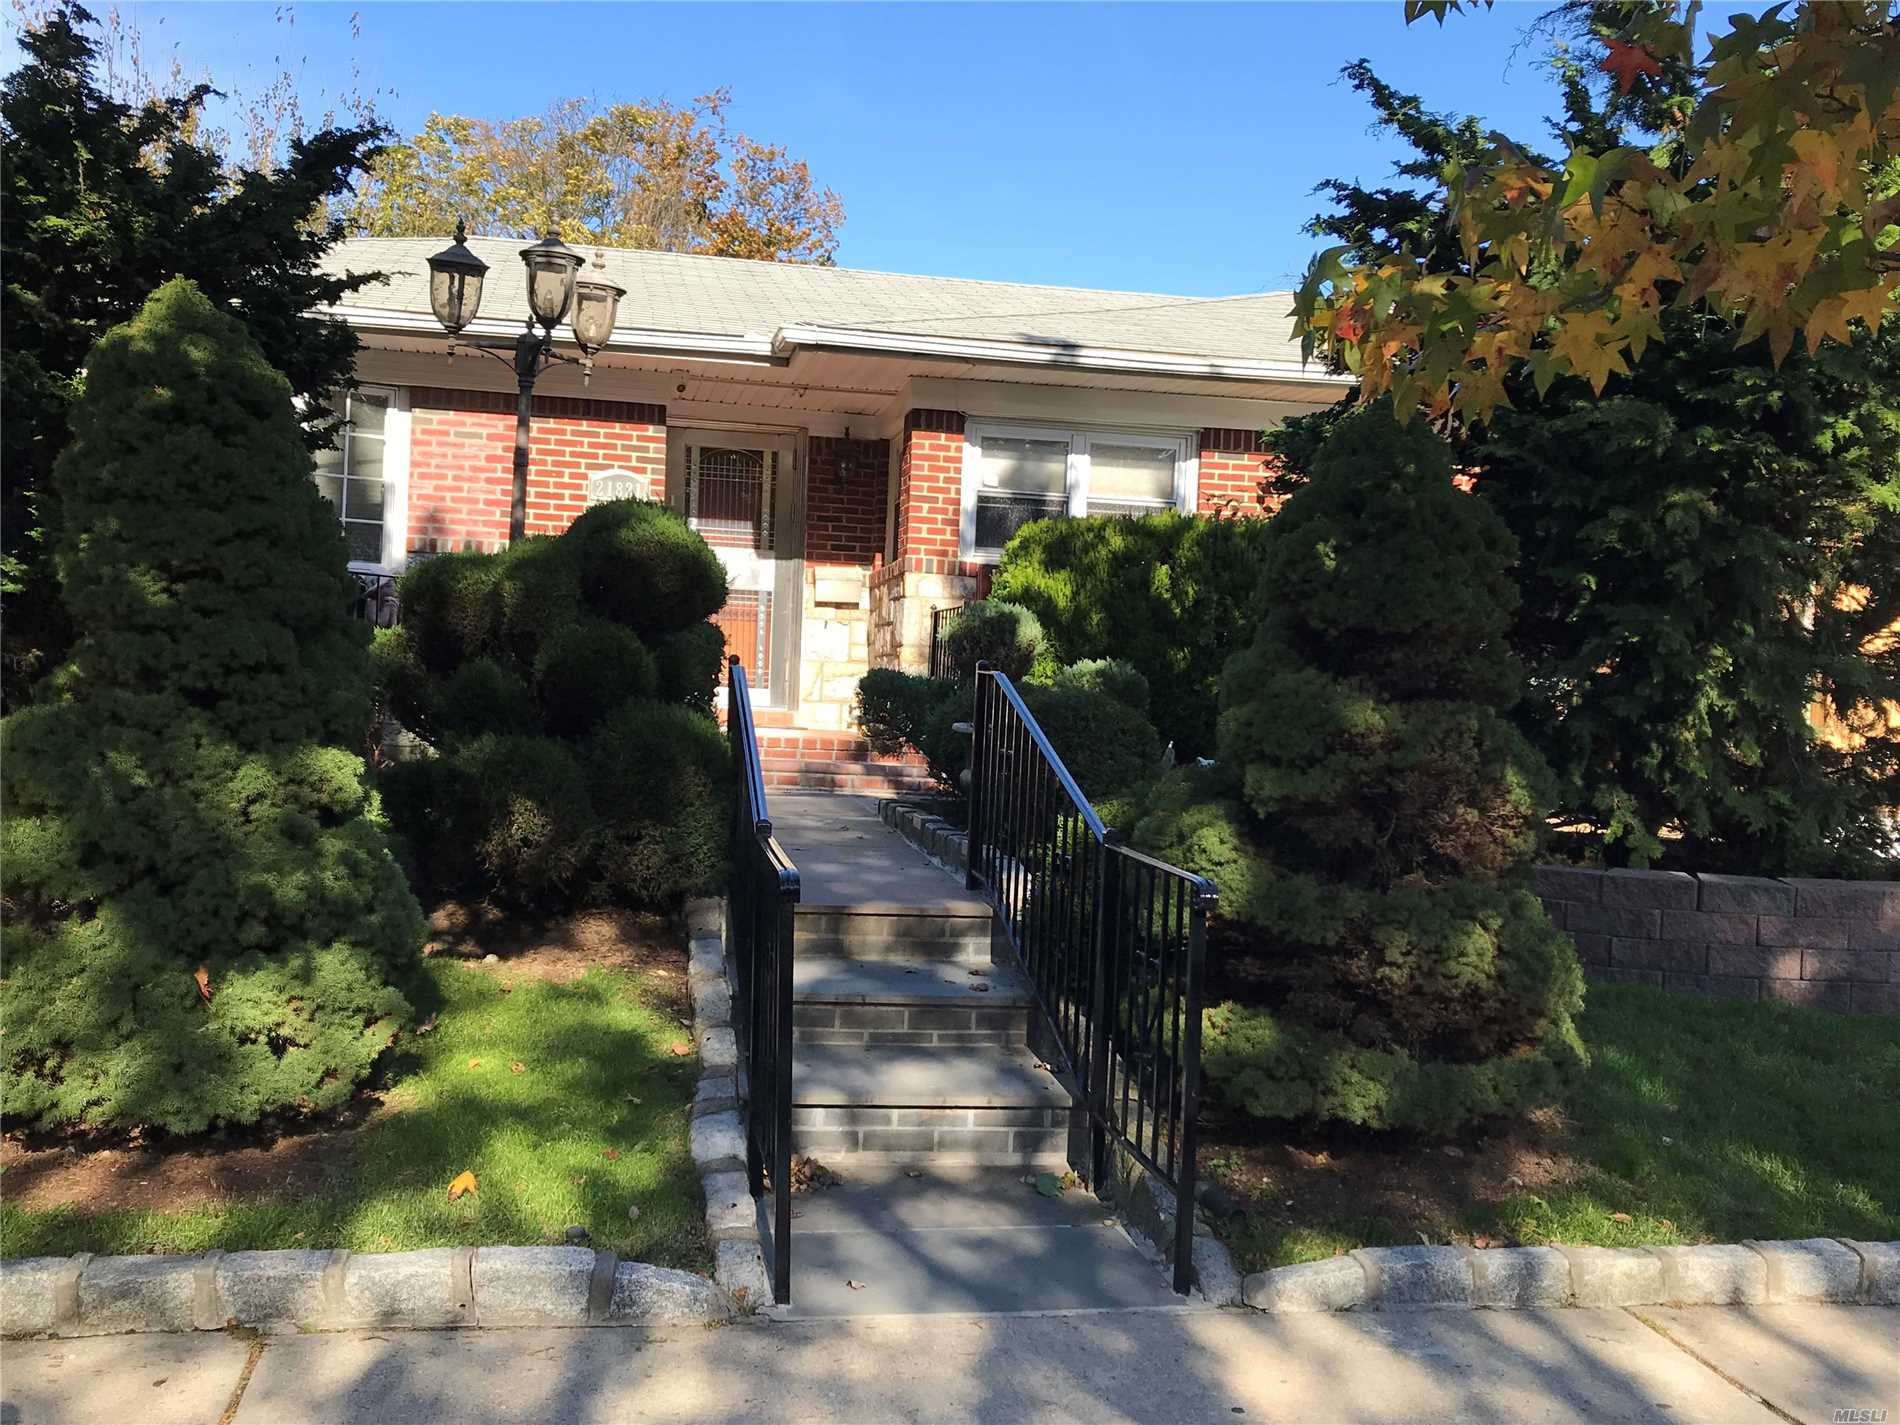 Just Fill The 'Fridge And Move Right Into This Gorgeous Renovated Brick Ranch! Featuring A Master Bedroom Suite With 3 Closets, 2 Large Additional Bedrooms, A True Entertainer's Basement And Many Creature Comforts, This Home Is A True Turn-Key Gem!